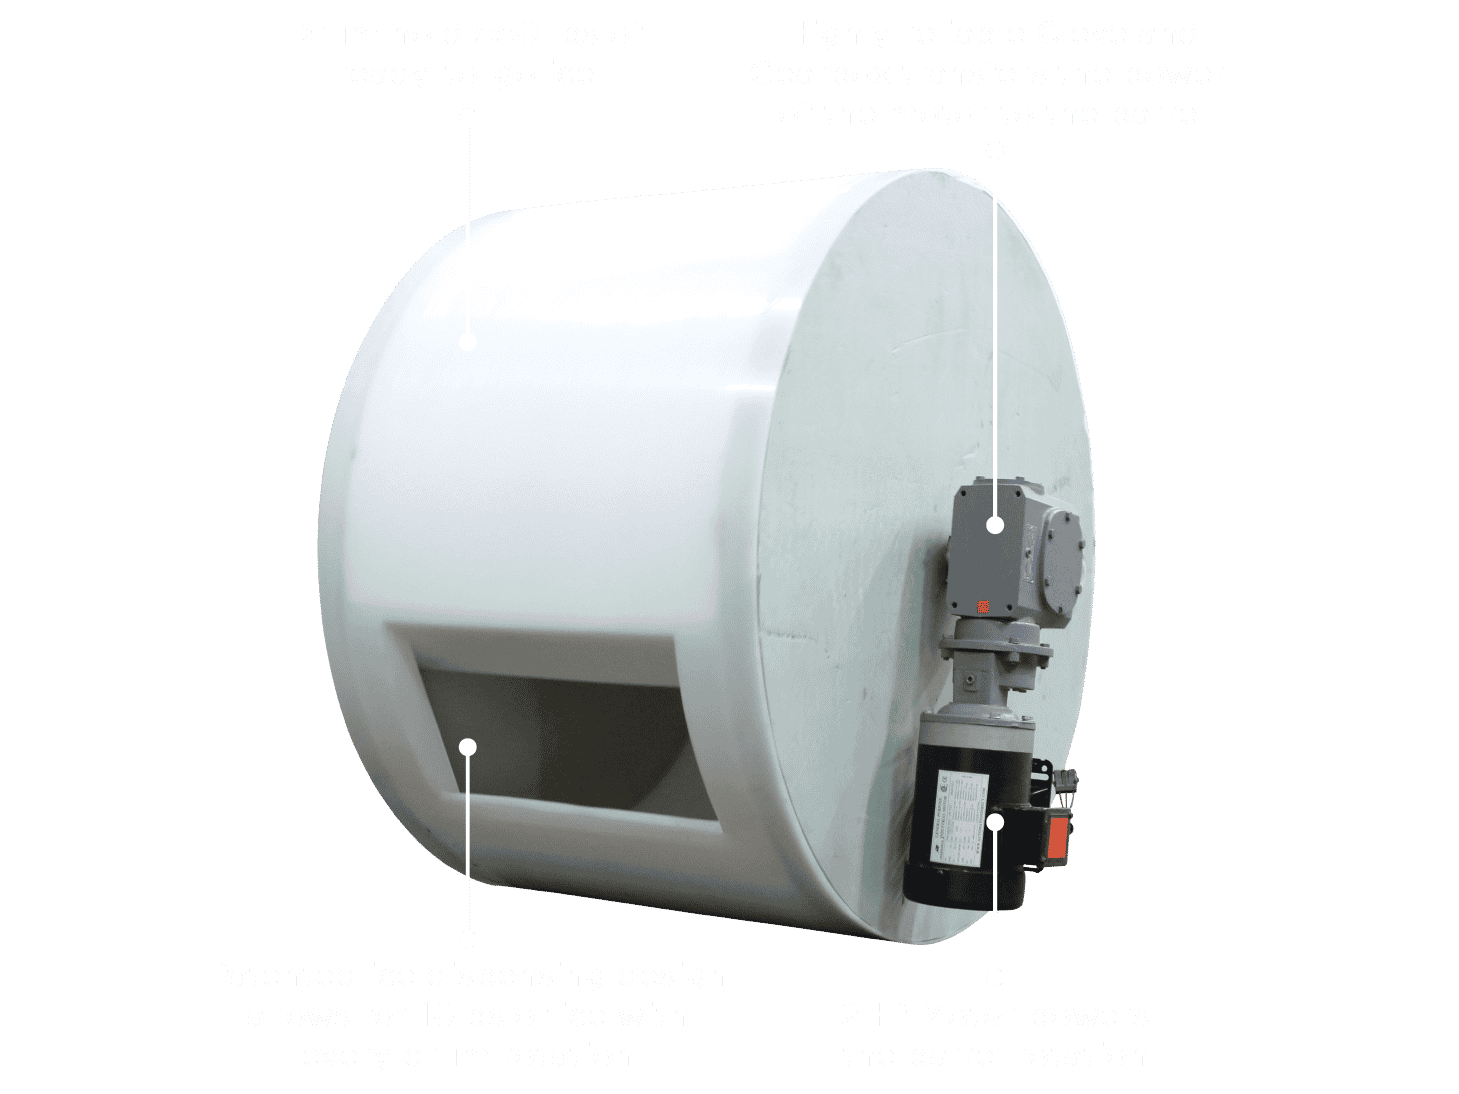 Versavend drum holds 550 lbs of ready-to-go-ice